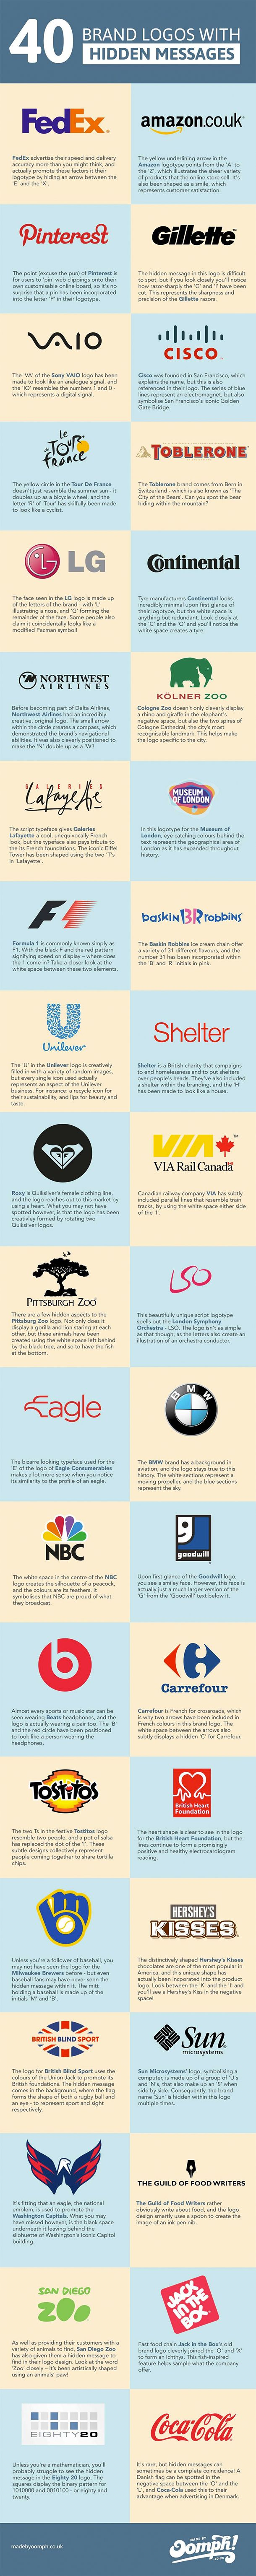 40 Brand Logos With Hidden Messages [infographic]